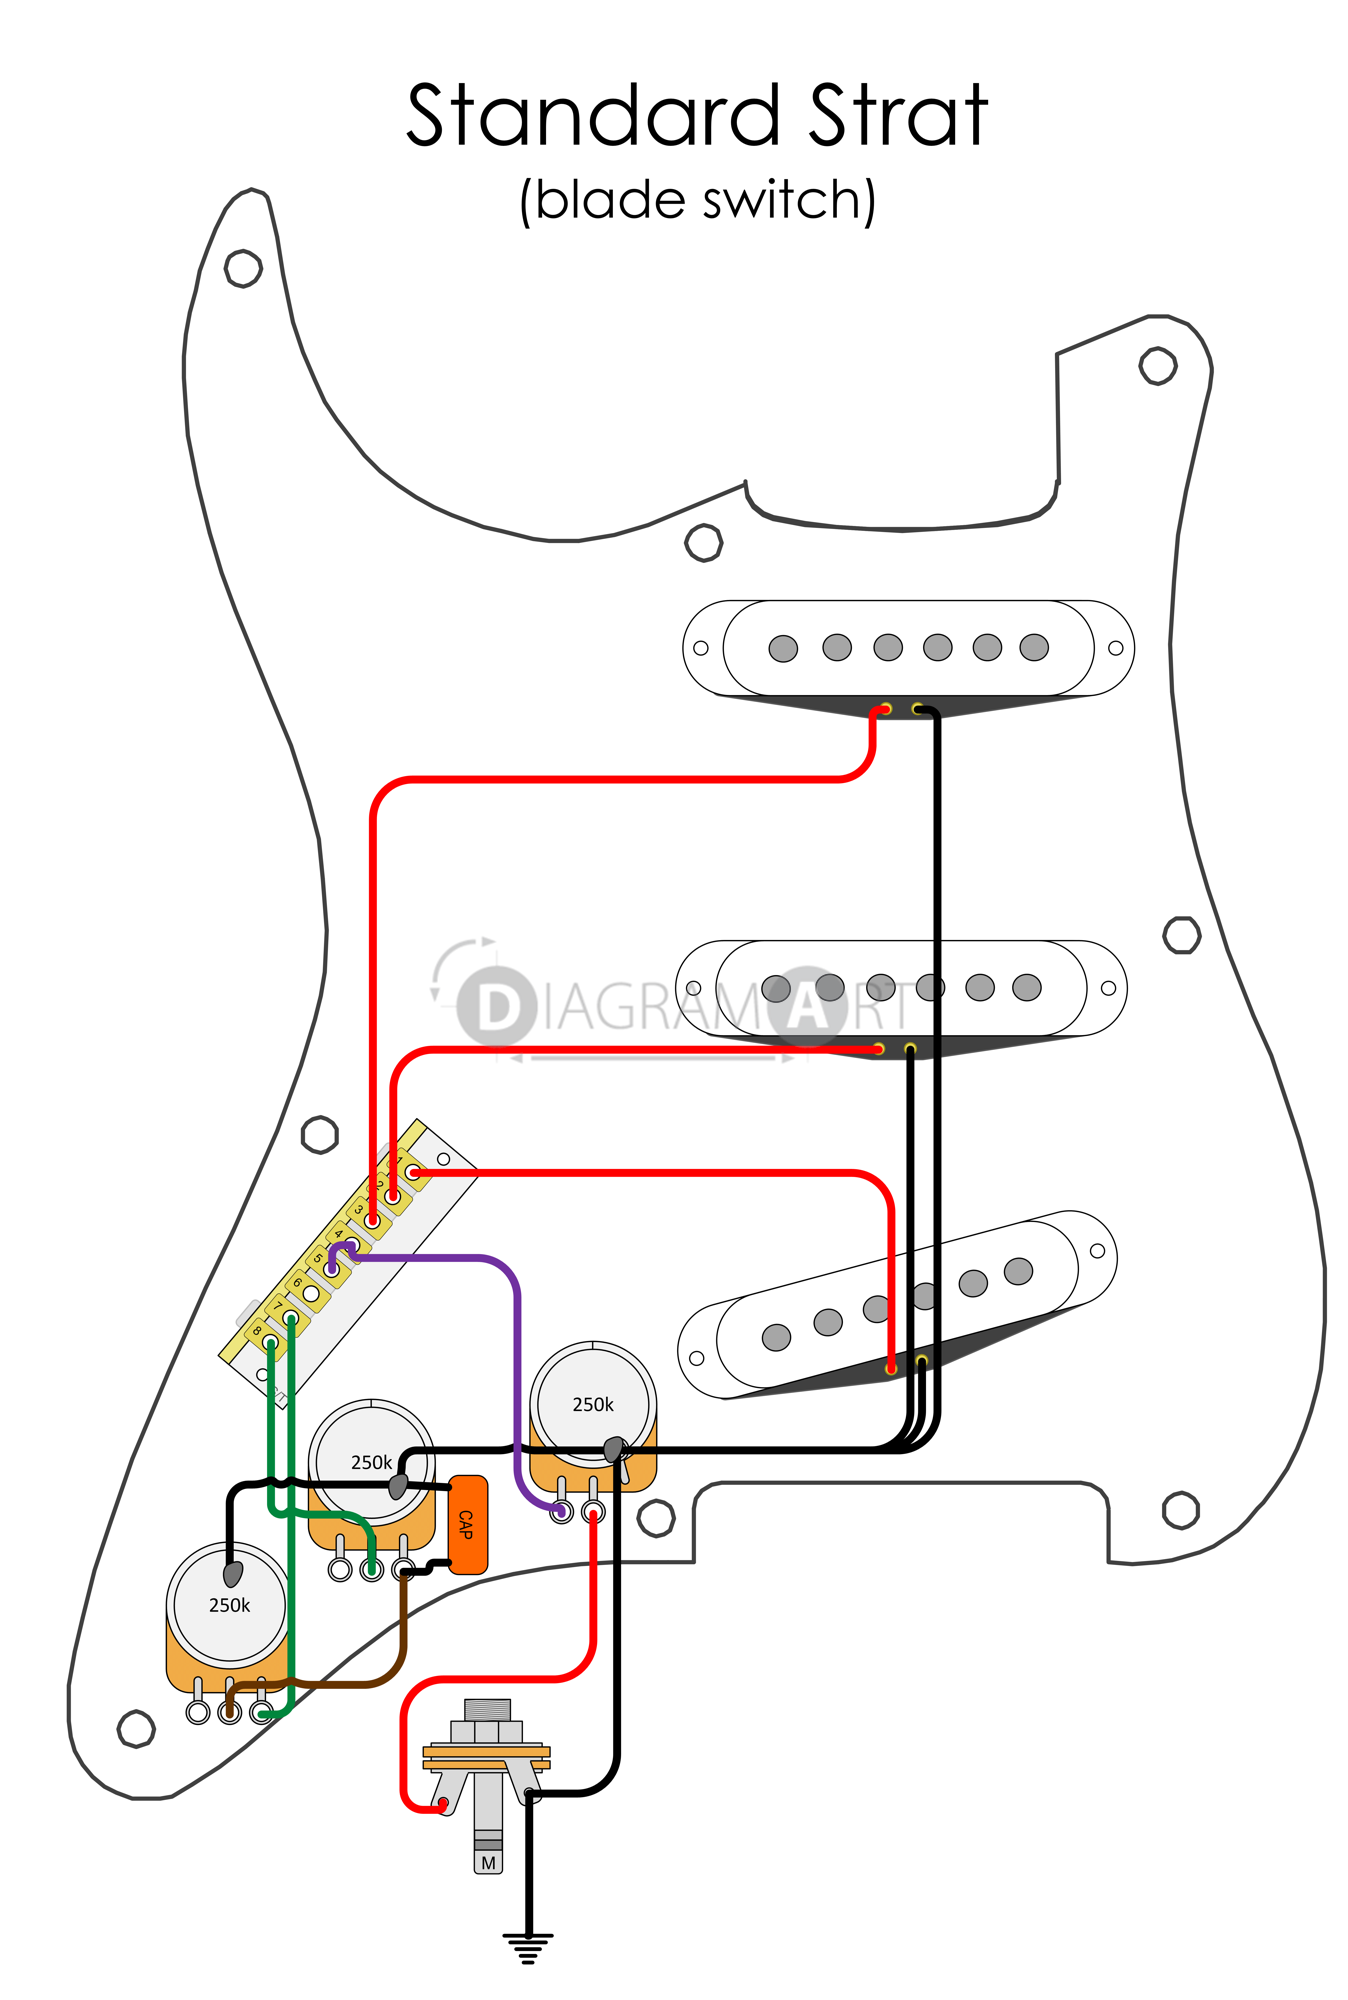 Electric Guitar Wiring  Standard Strat  Blade Switch   Electric Circuit    Free Sketch